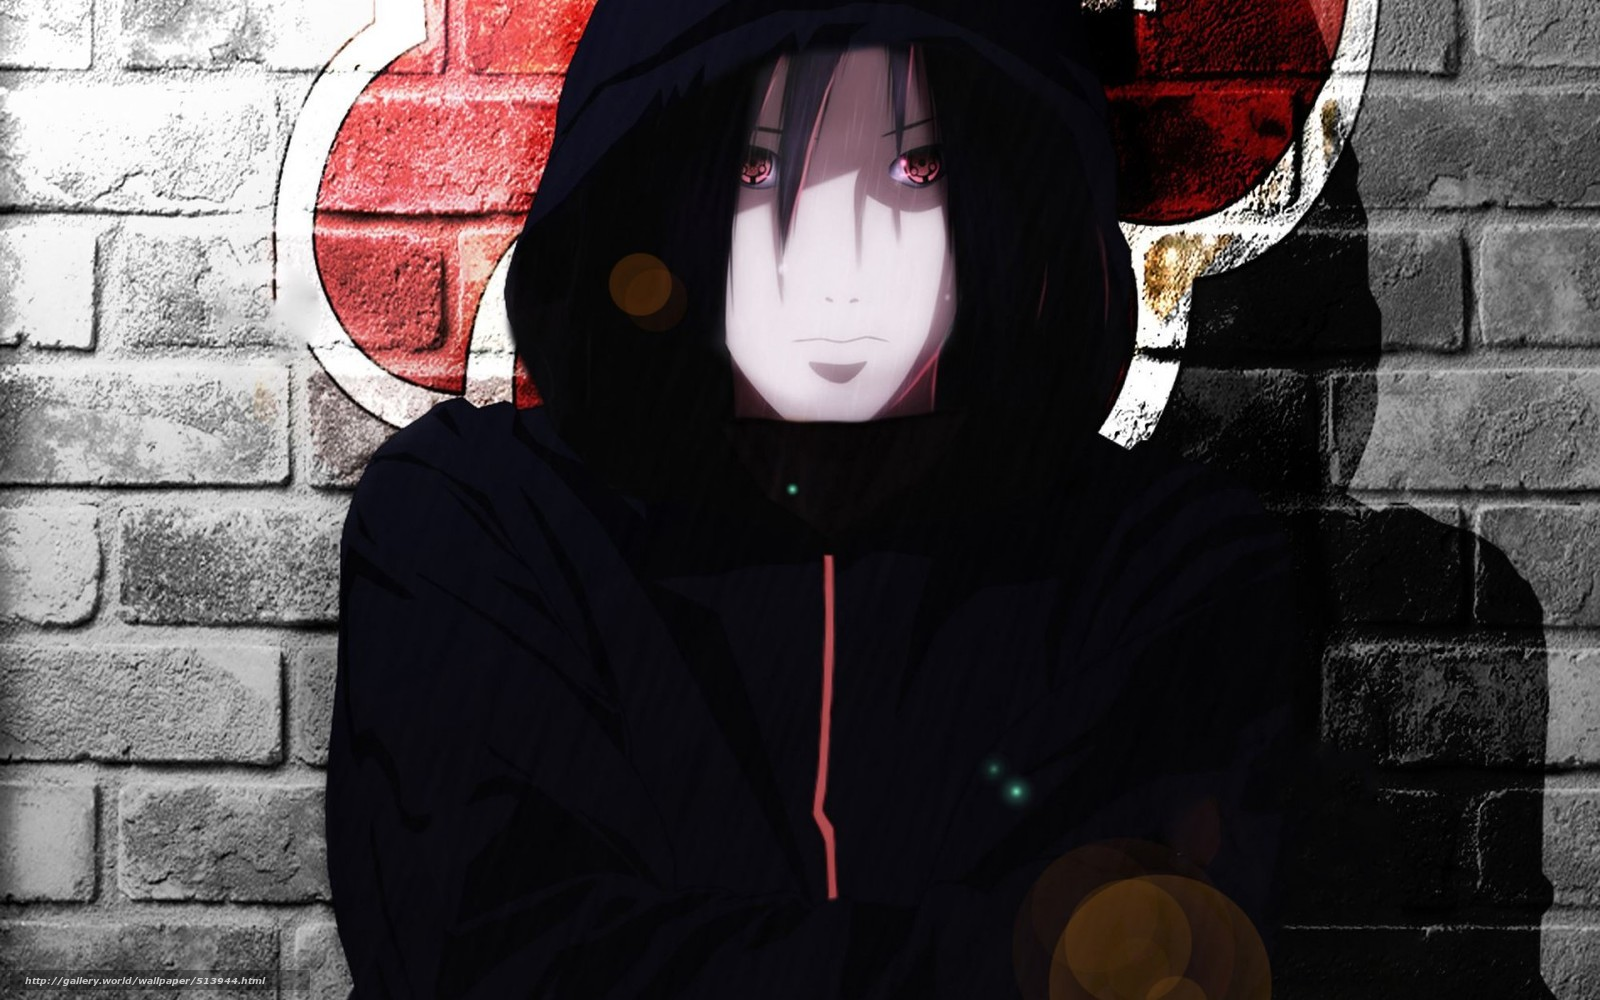 Download wallpaper madara uchiha, Uchiha Madara, Uchiha, naruto anime